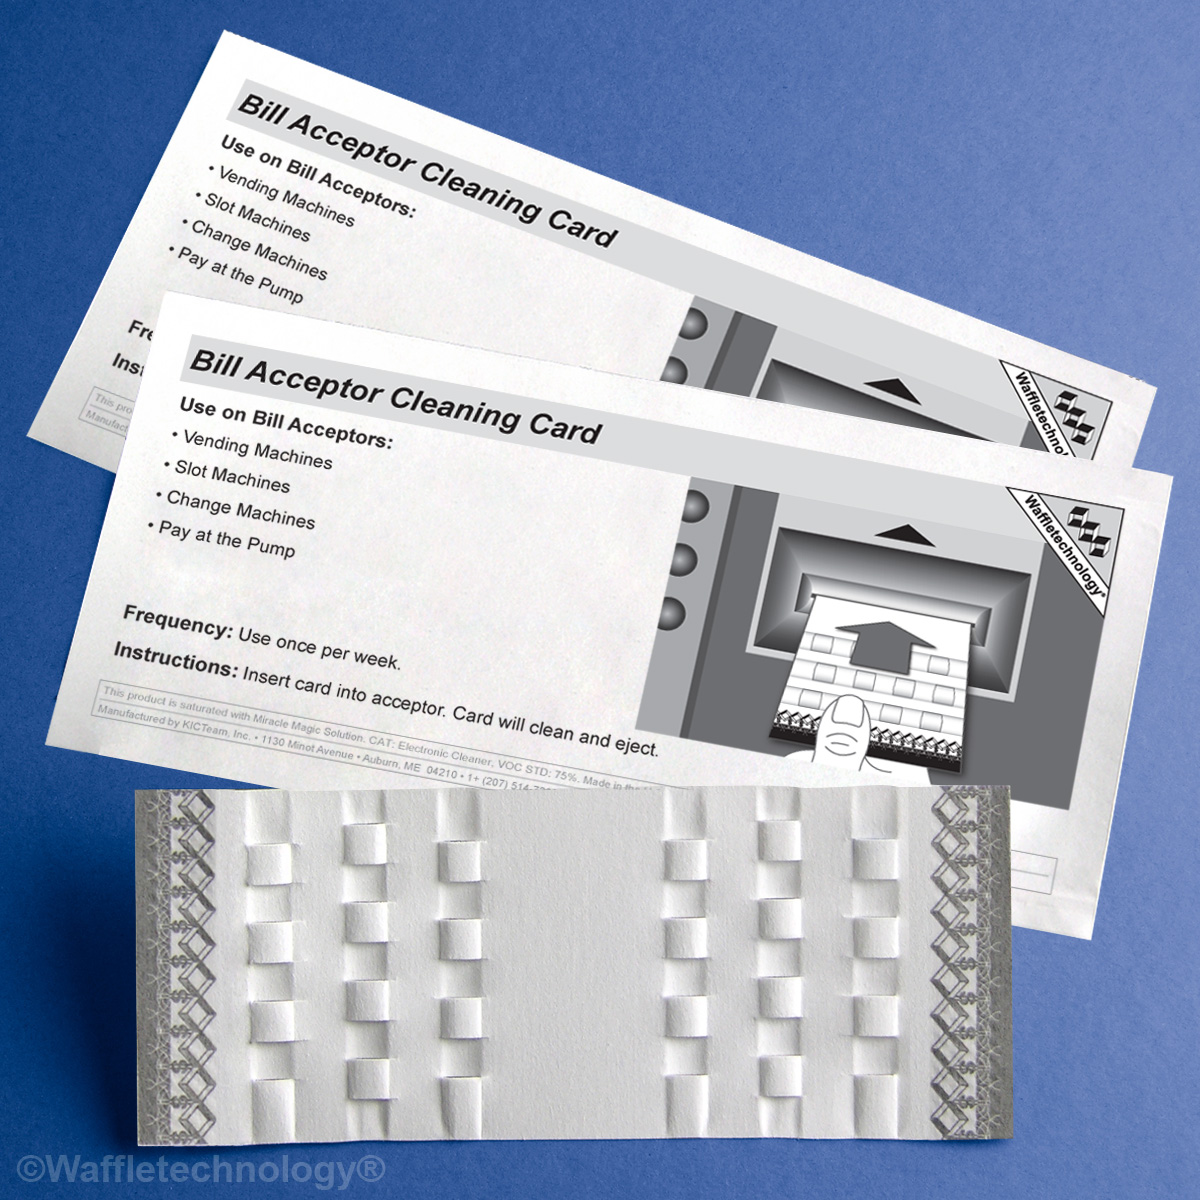 Bill Acceptor Cleaning Card featuring Waffletechnology®